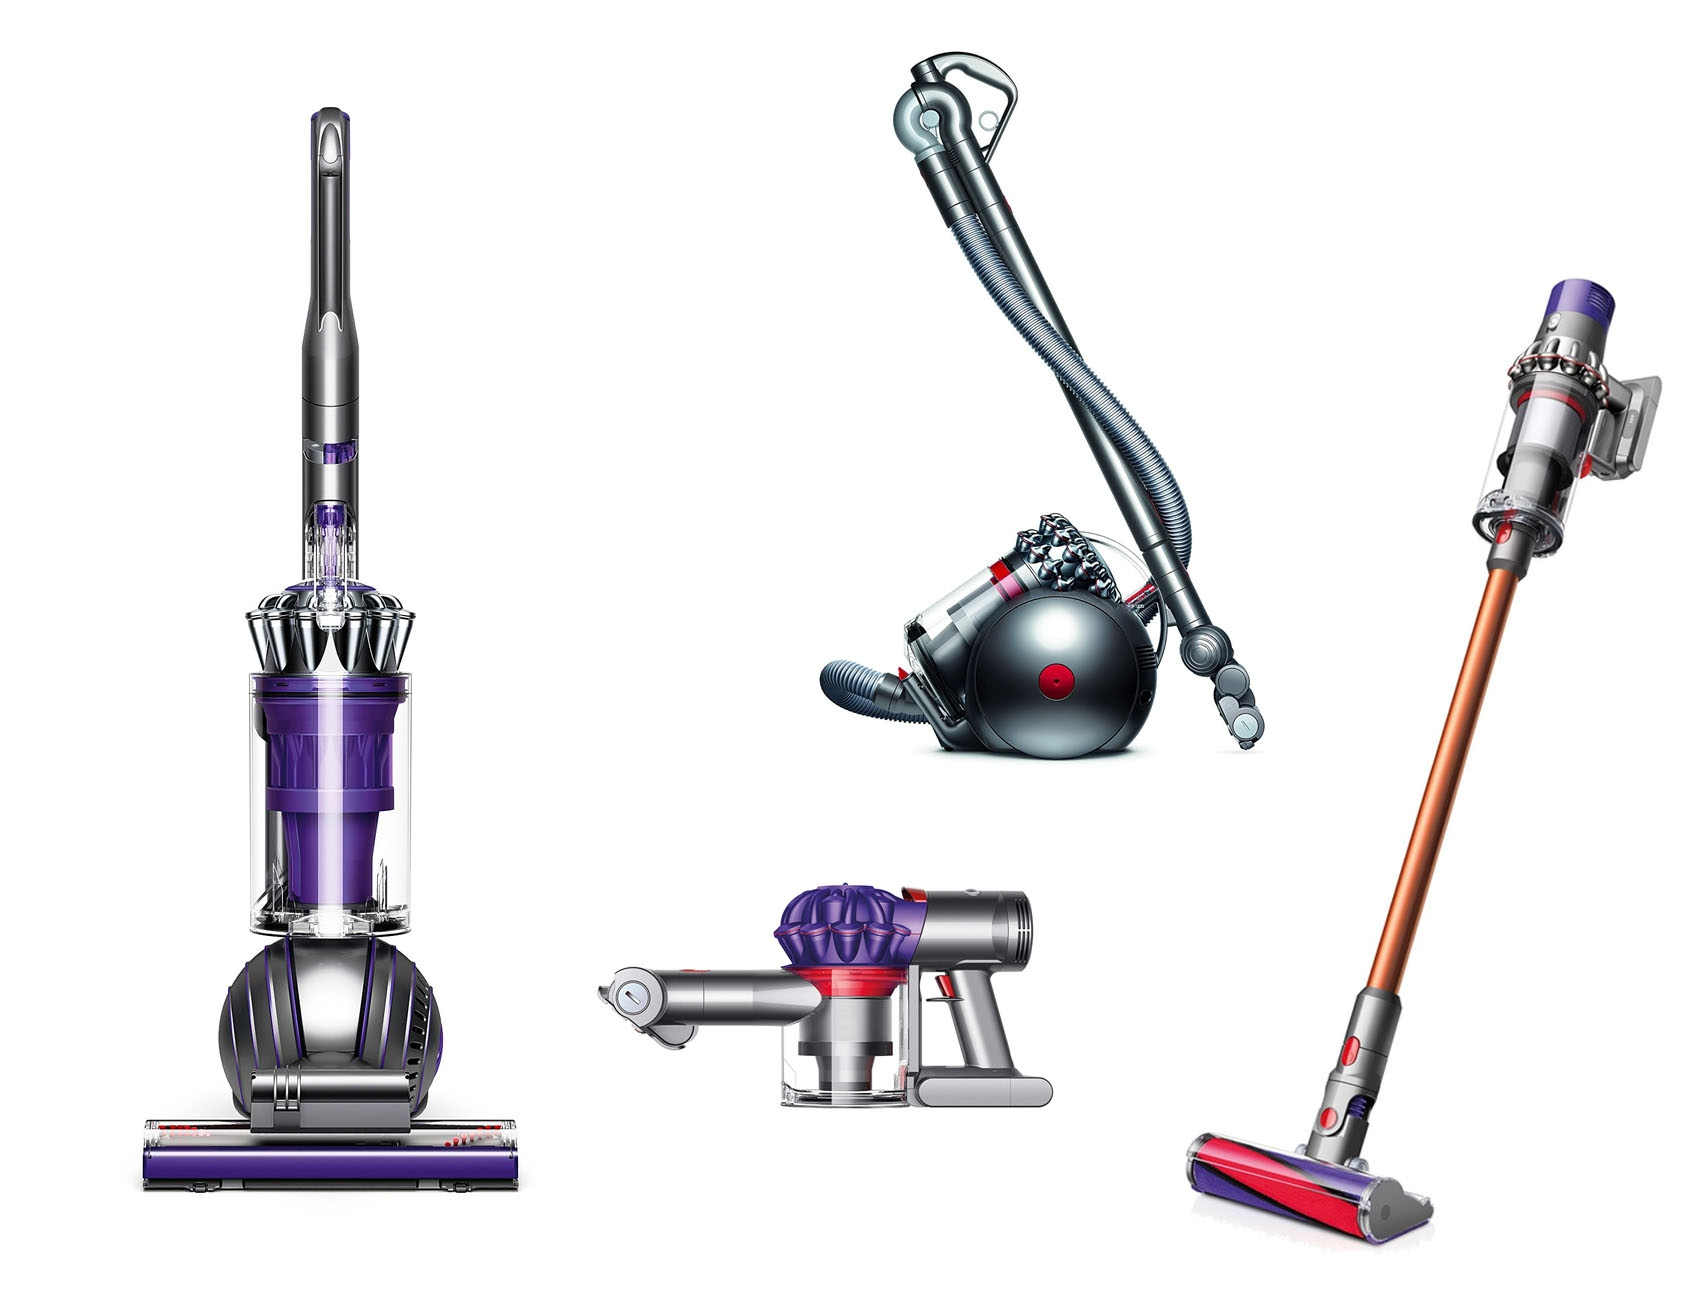 10 Best Dyson Vacuums For 2019 Reviews And Comparison Charts